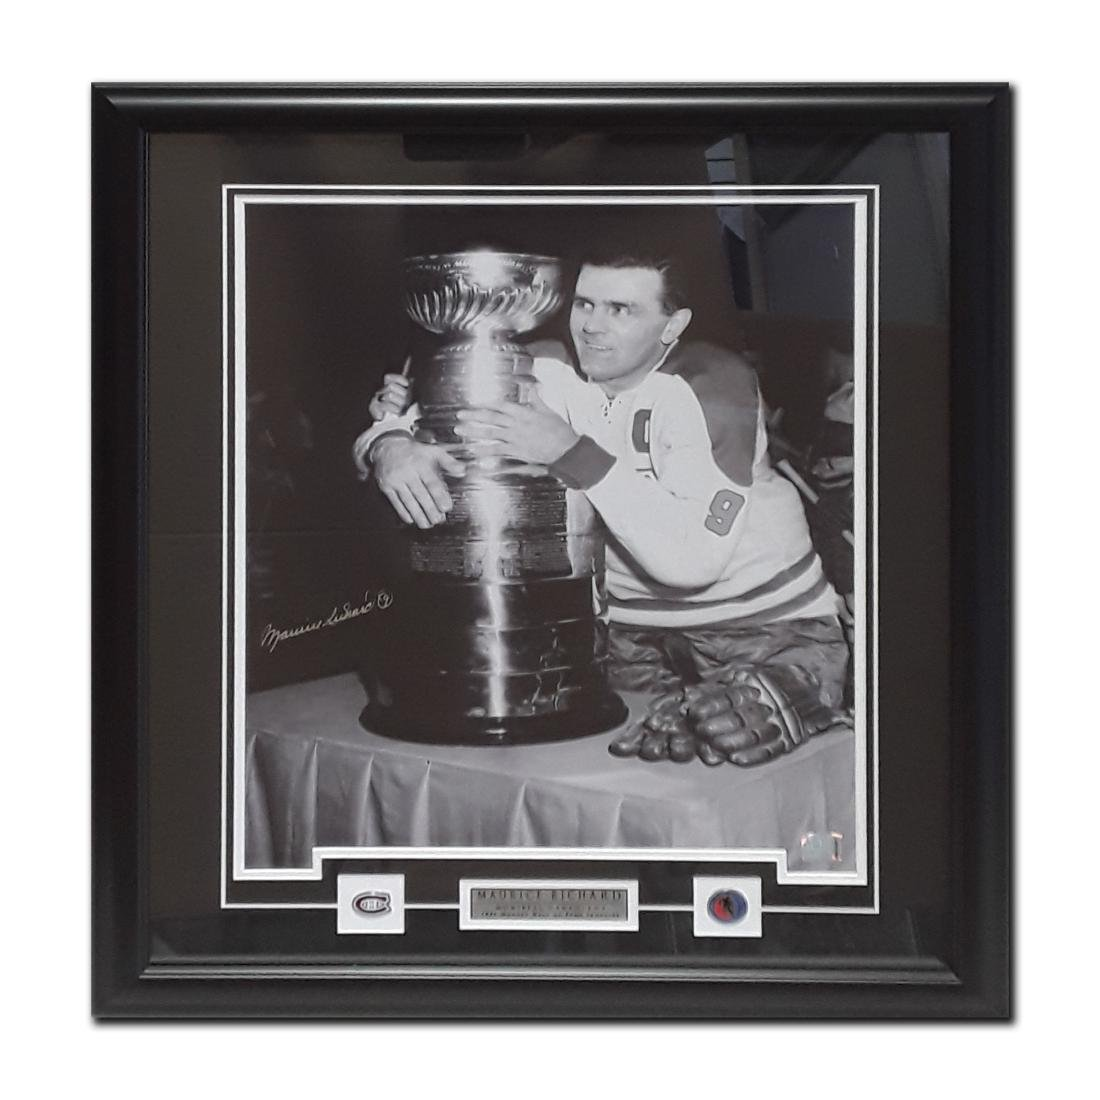 Framed and signed picture of Maurice Richard